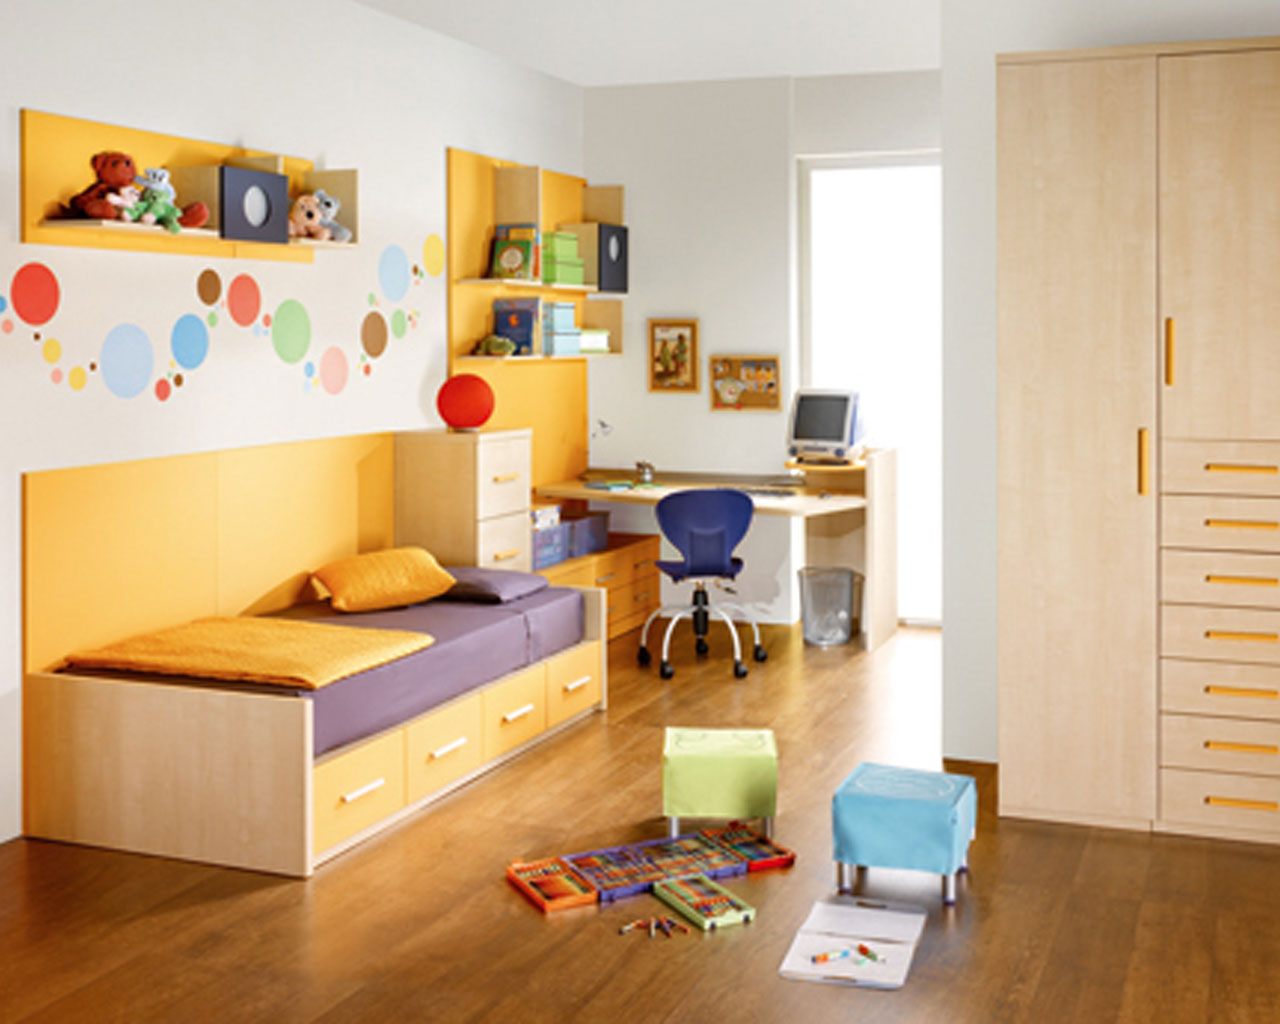 Single Storage Bed and Cozy Computer Design Completing Fun Kids Room Decor with Laminate Oak Flooring